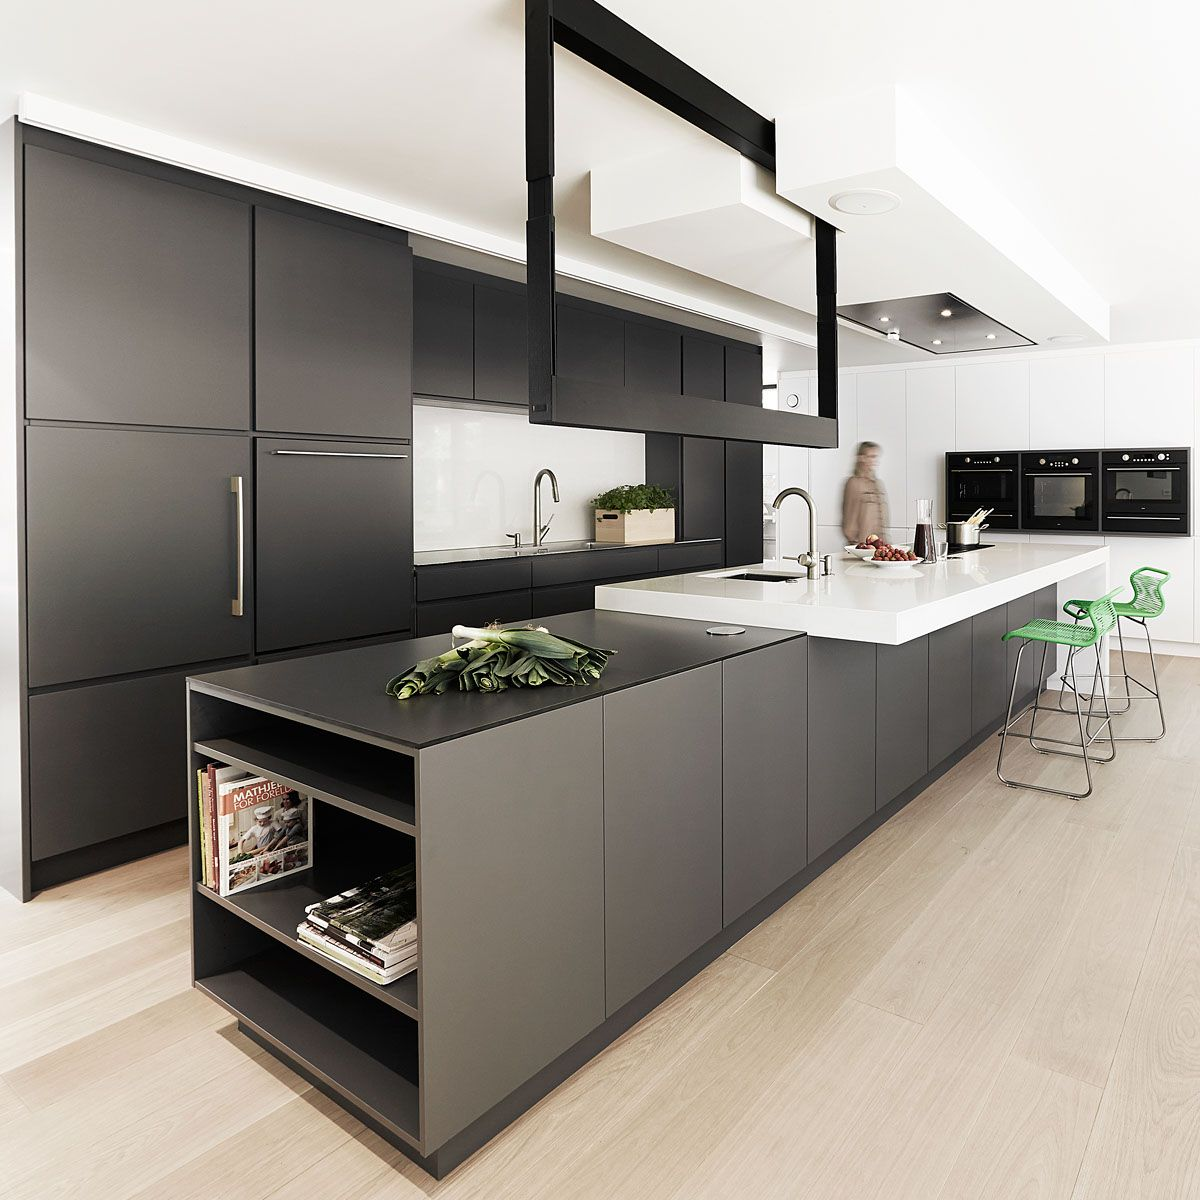 boform kitchen - Google Search | kitchen | Pinterest | Moderne küche ...